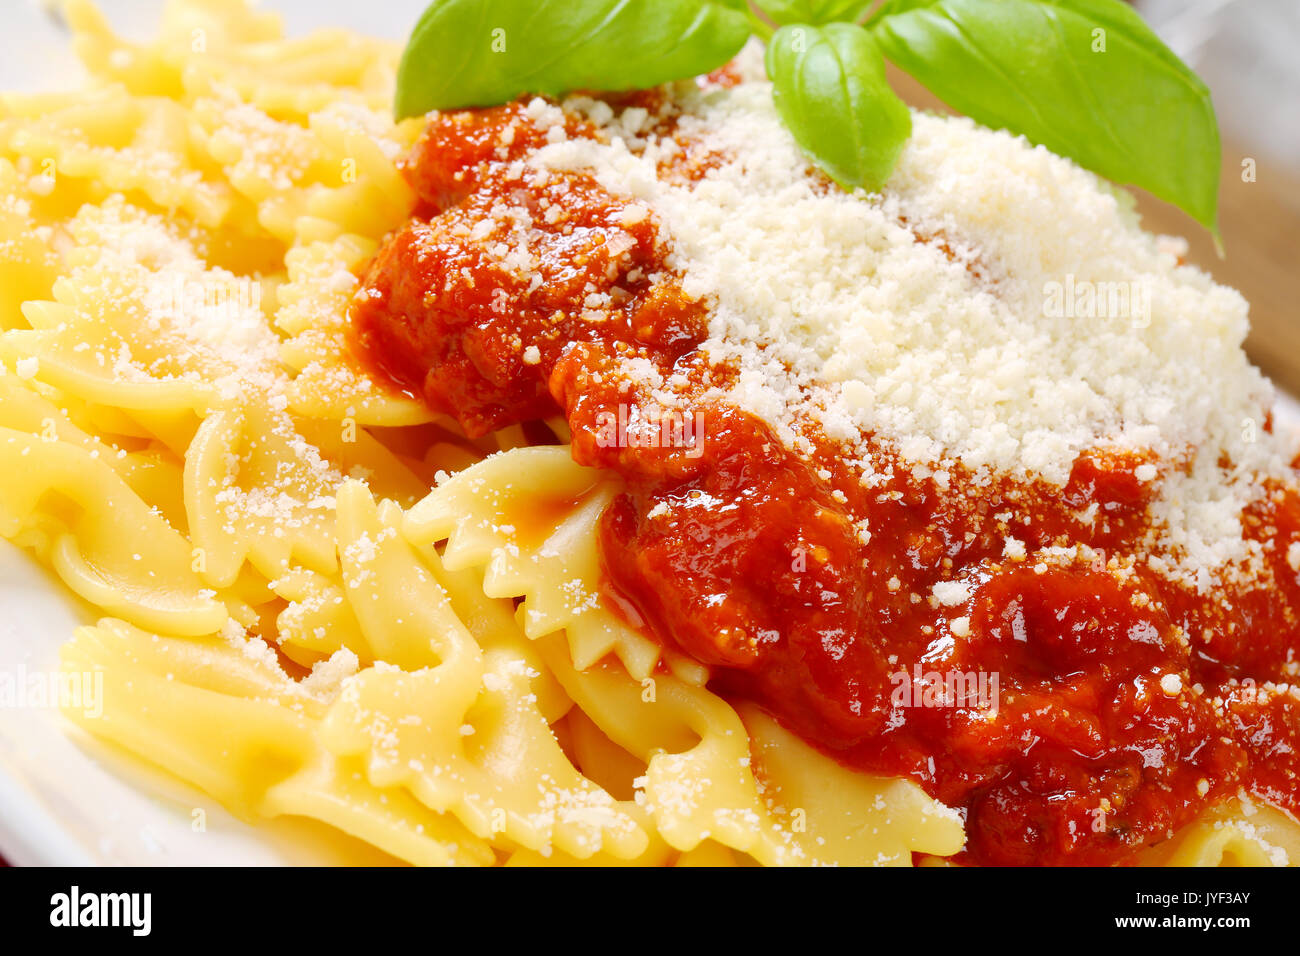 Bow-tie pasta with thick tomato sauce and parmesan - Stock Image